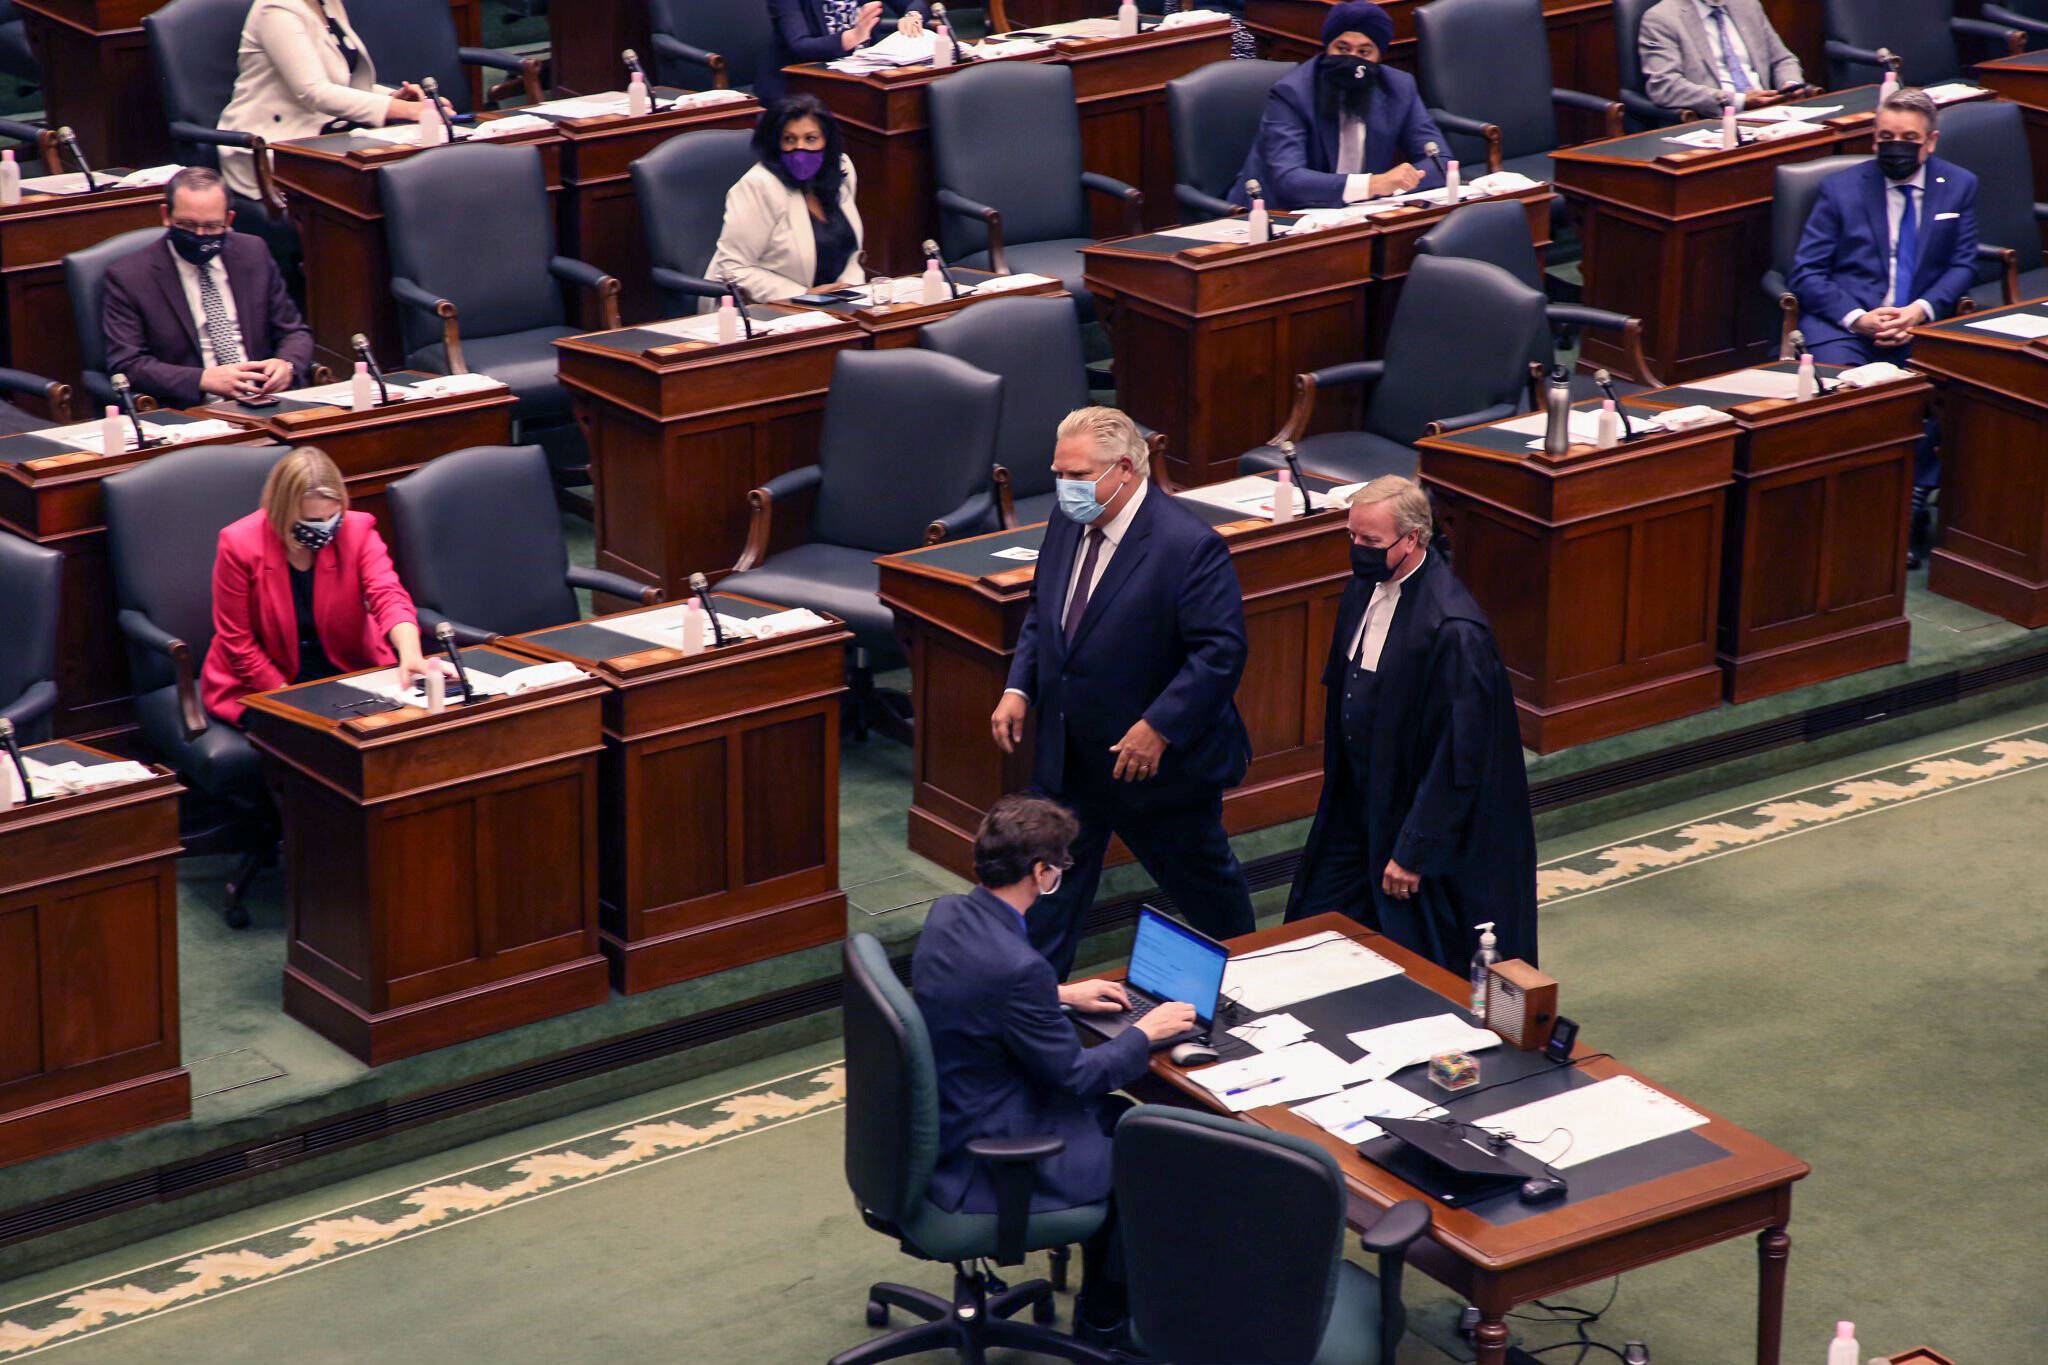 doug ford notwithstanding clause